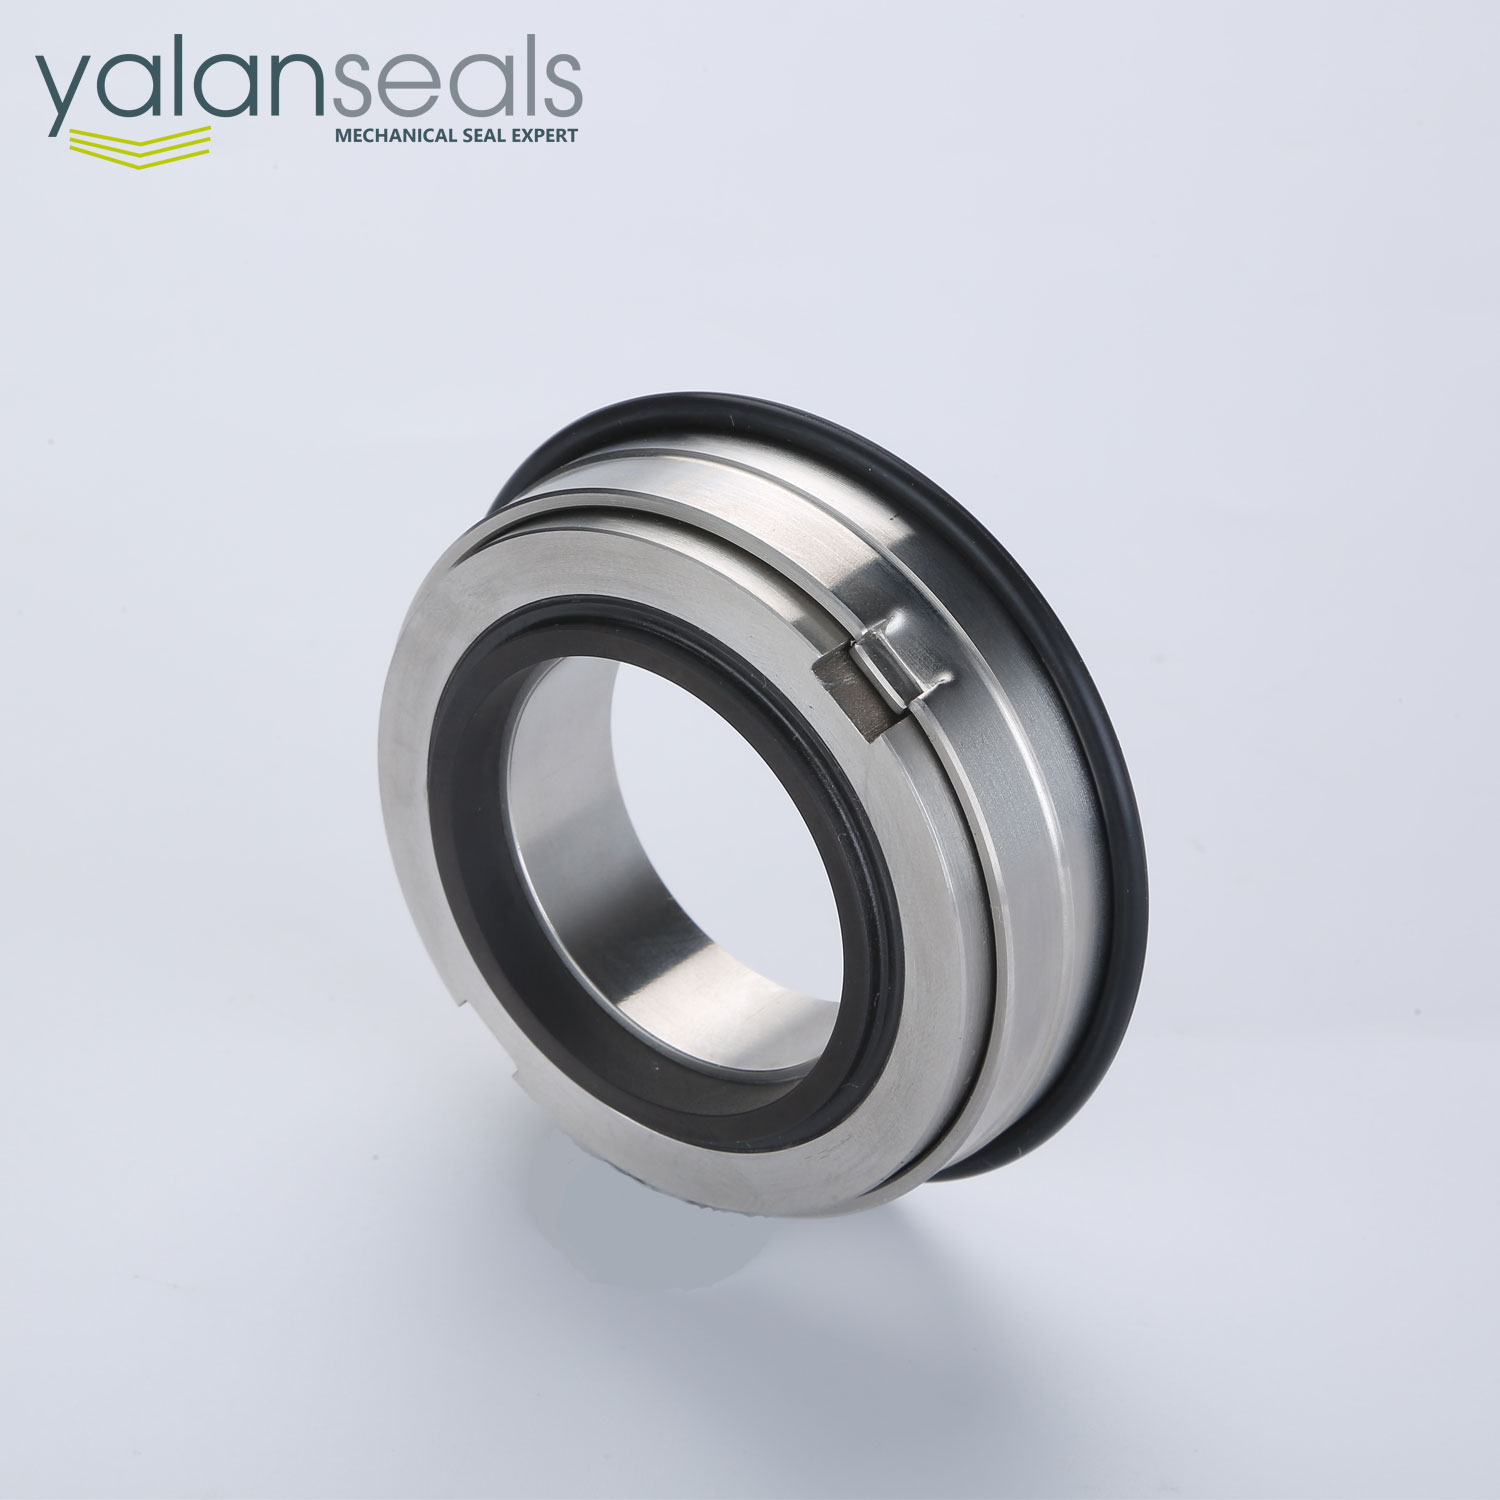 H10 Multi Spring Super Thin and Balanced Mechanical Seal